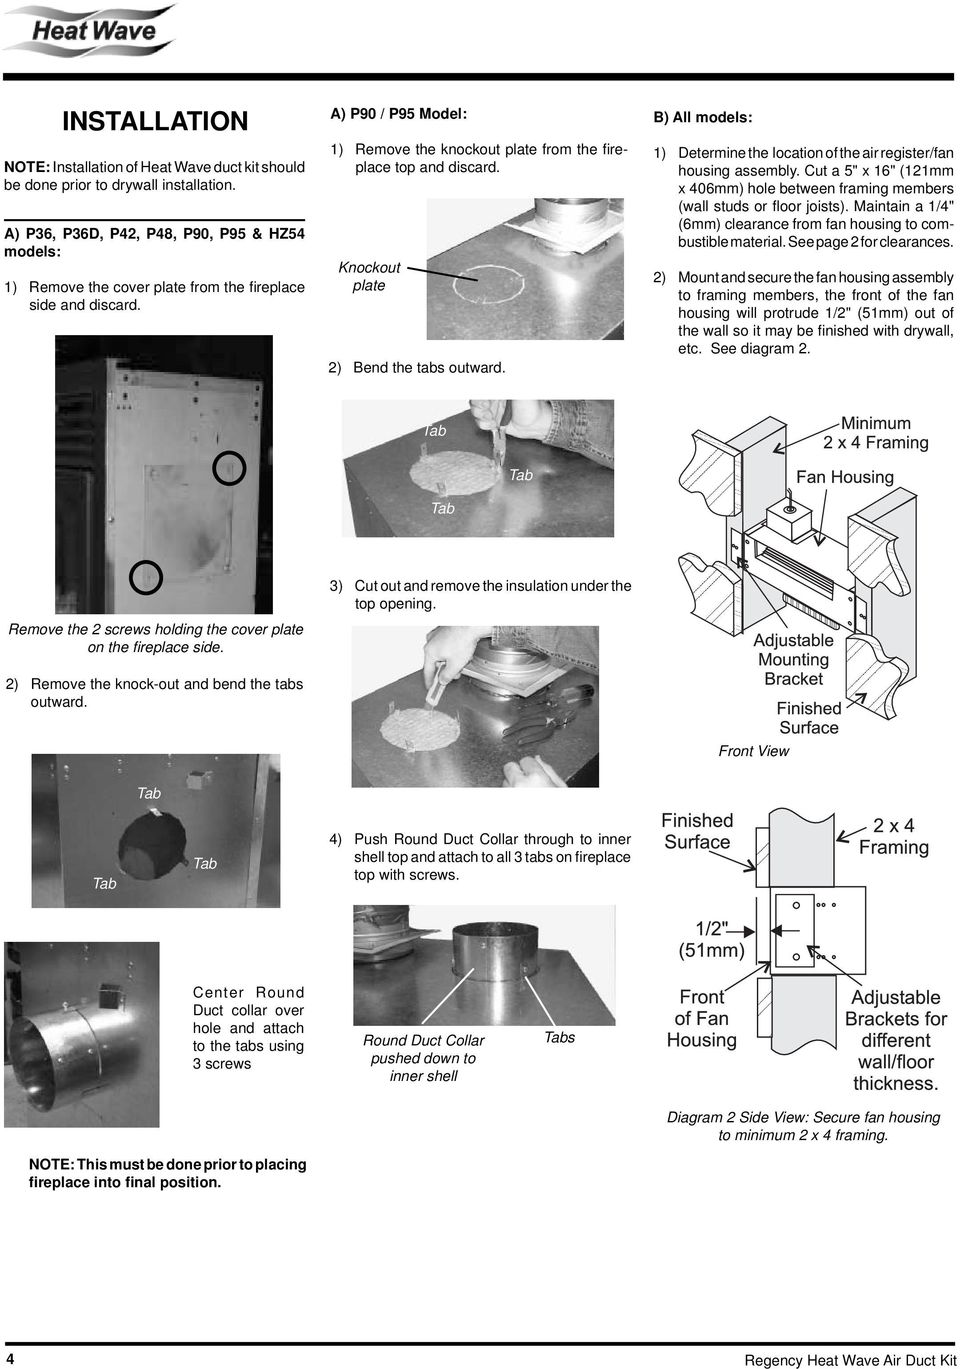 Heat Wave Duct Kit Pdf P90 Wiring Diagram 2 Knockout Plate Bend The Tabs Outward B All Models 1